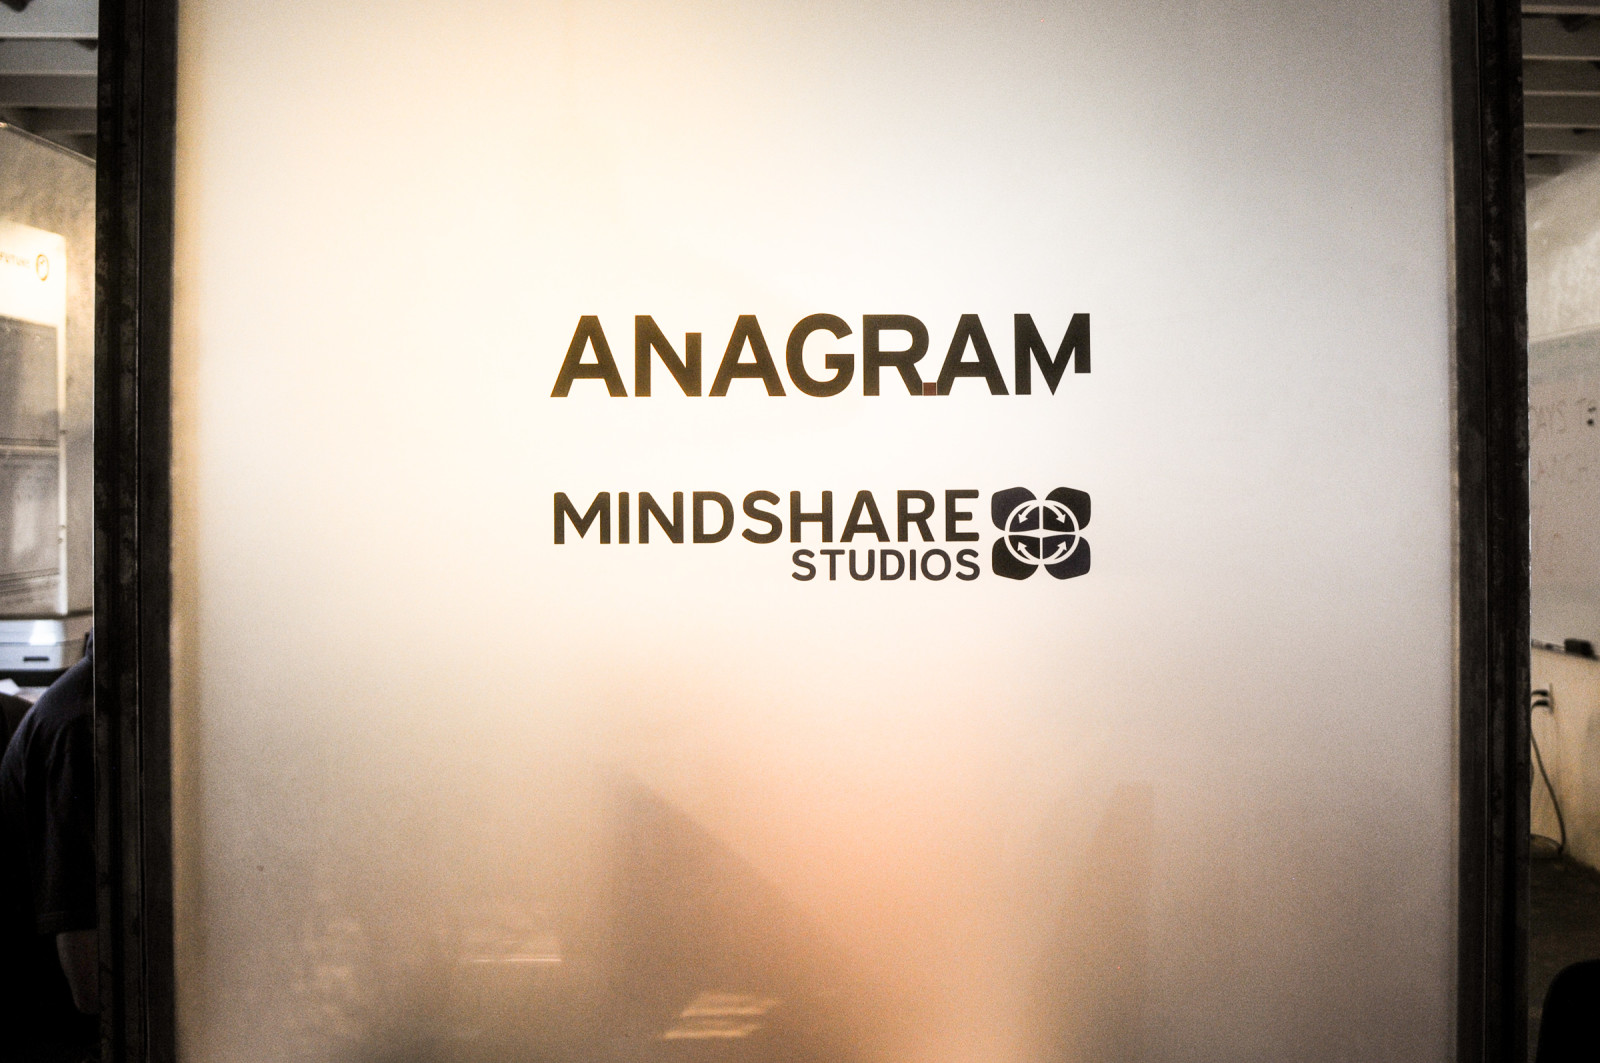 Burning Questions for Damian Taggart, Founder of Mindshare Studios Inc.